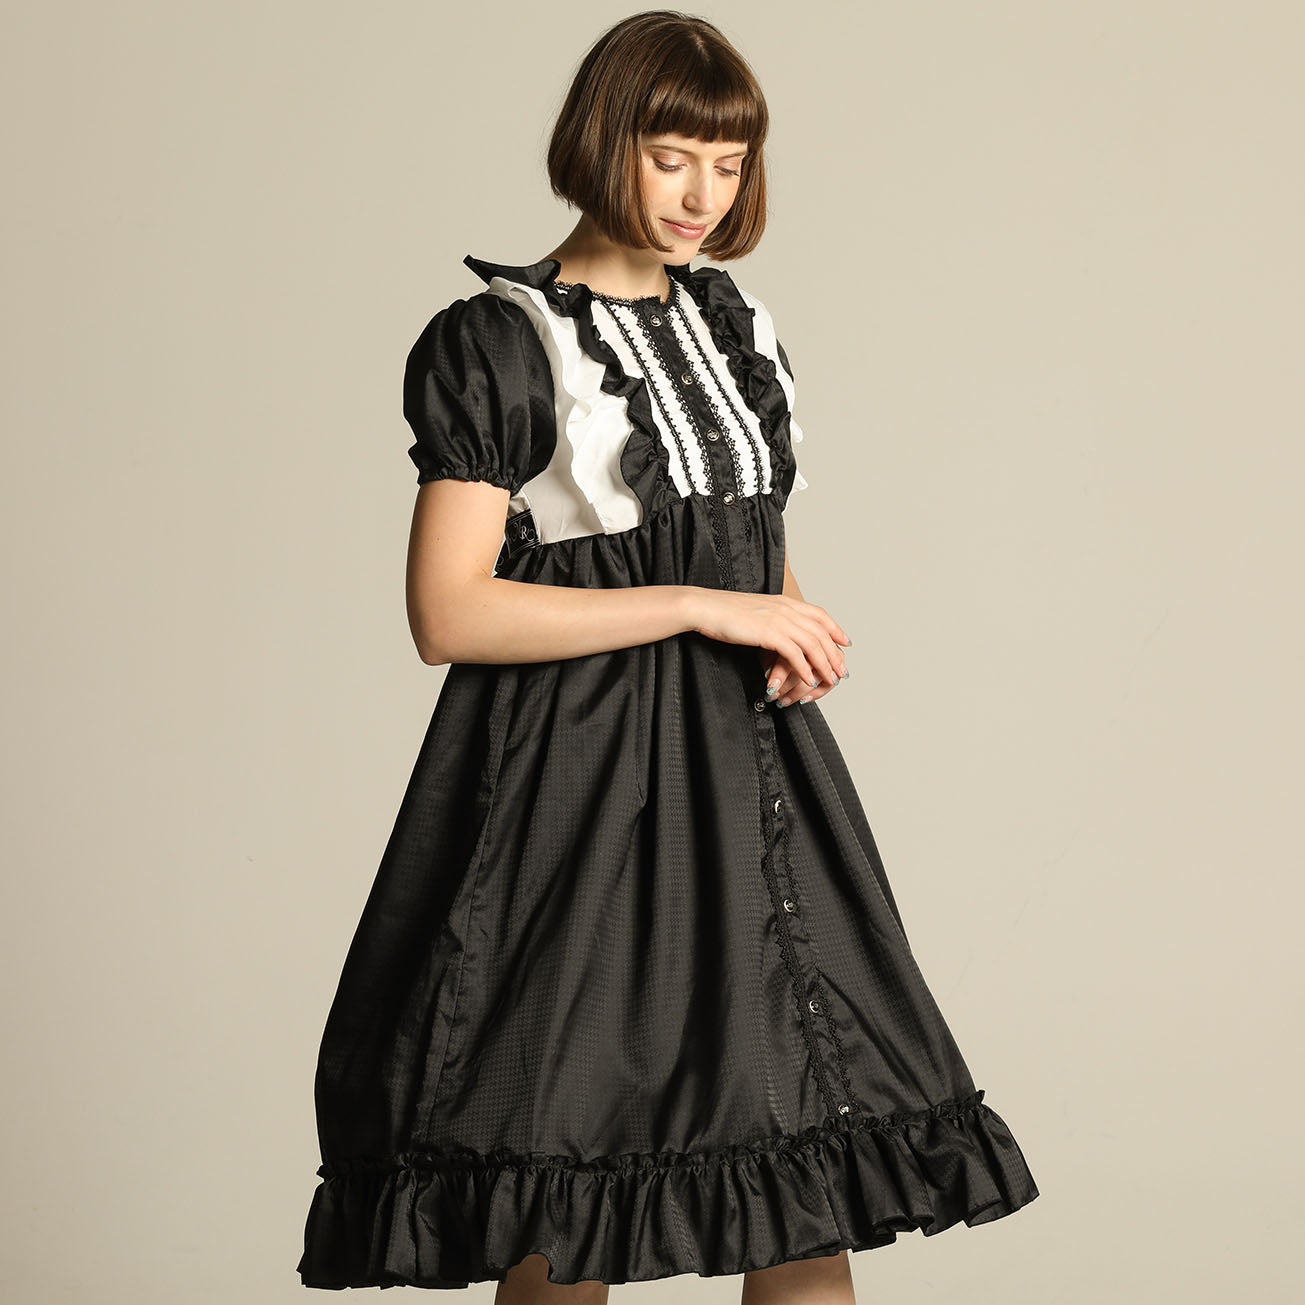 FRONT BUTTON PUFF SLLEVE DRESS